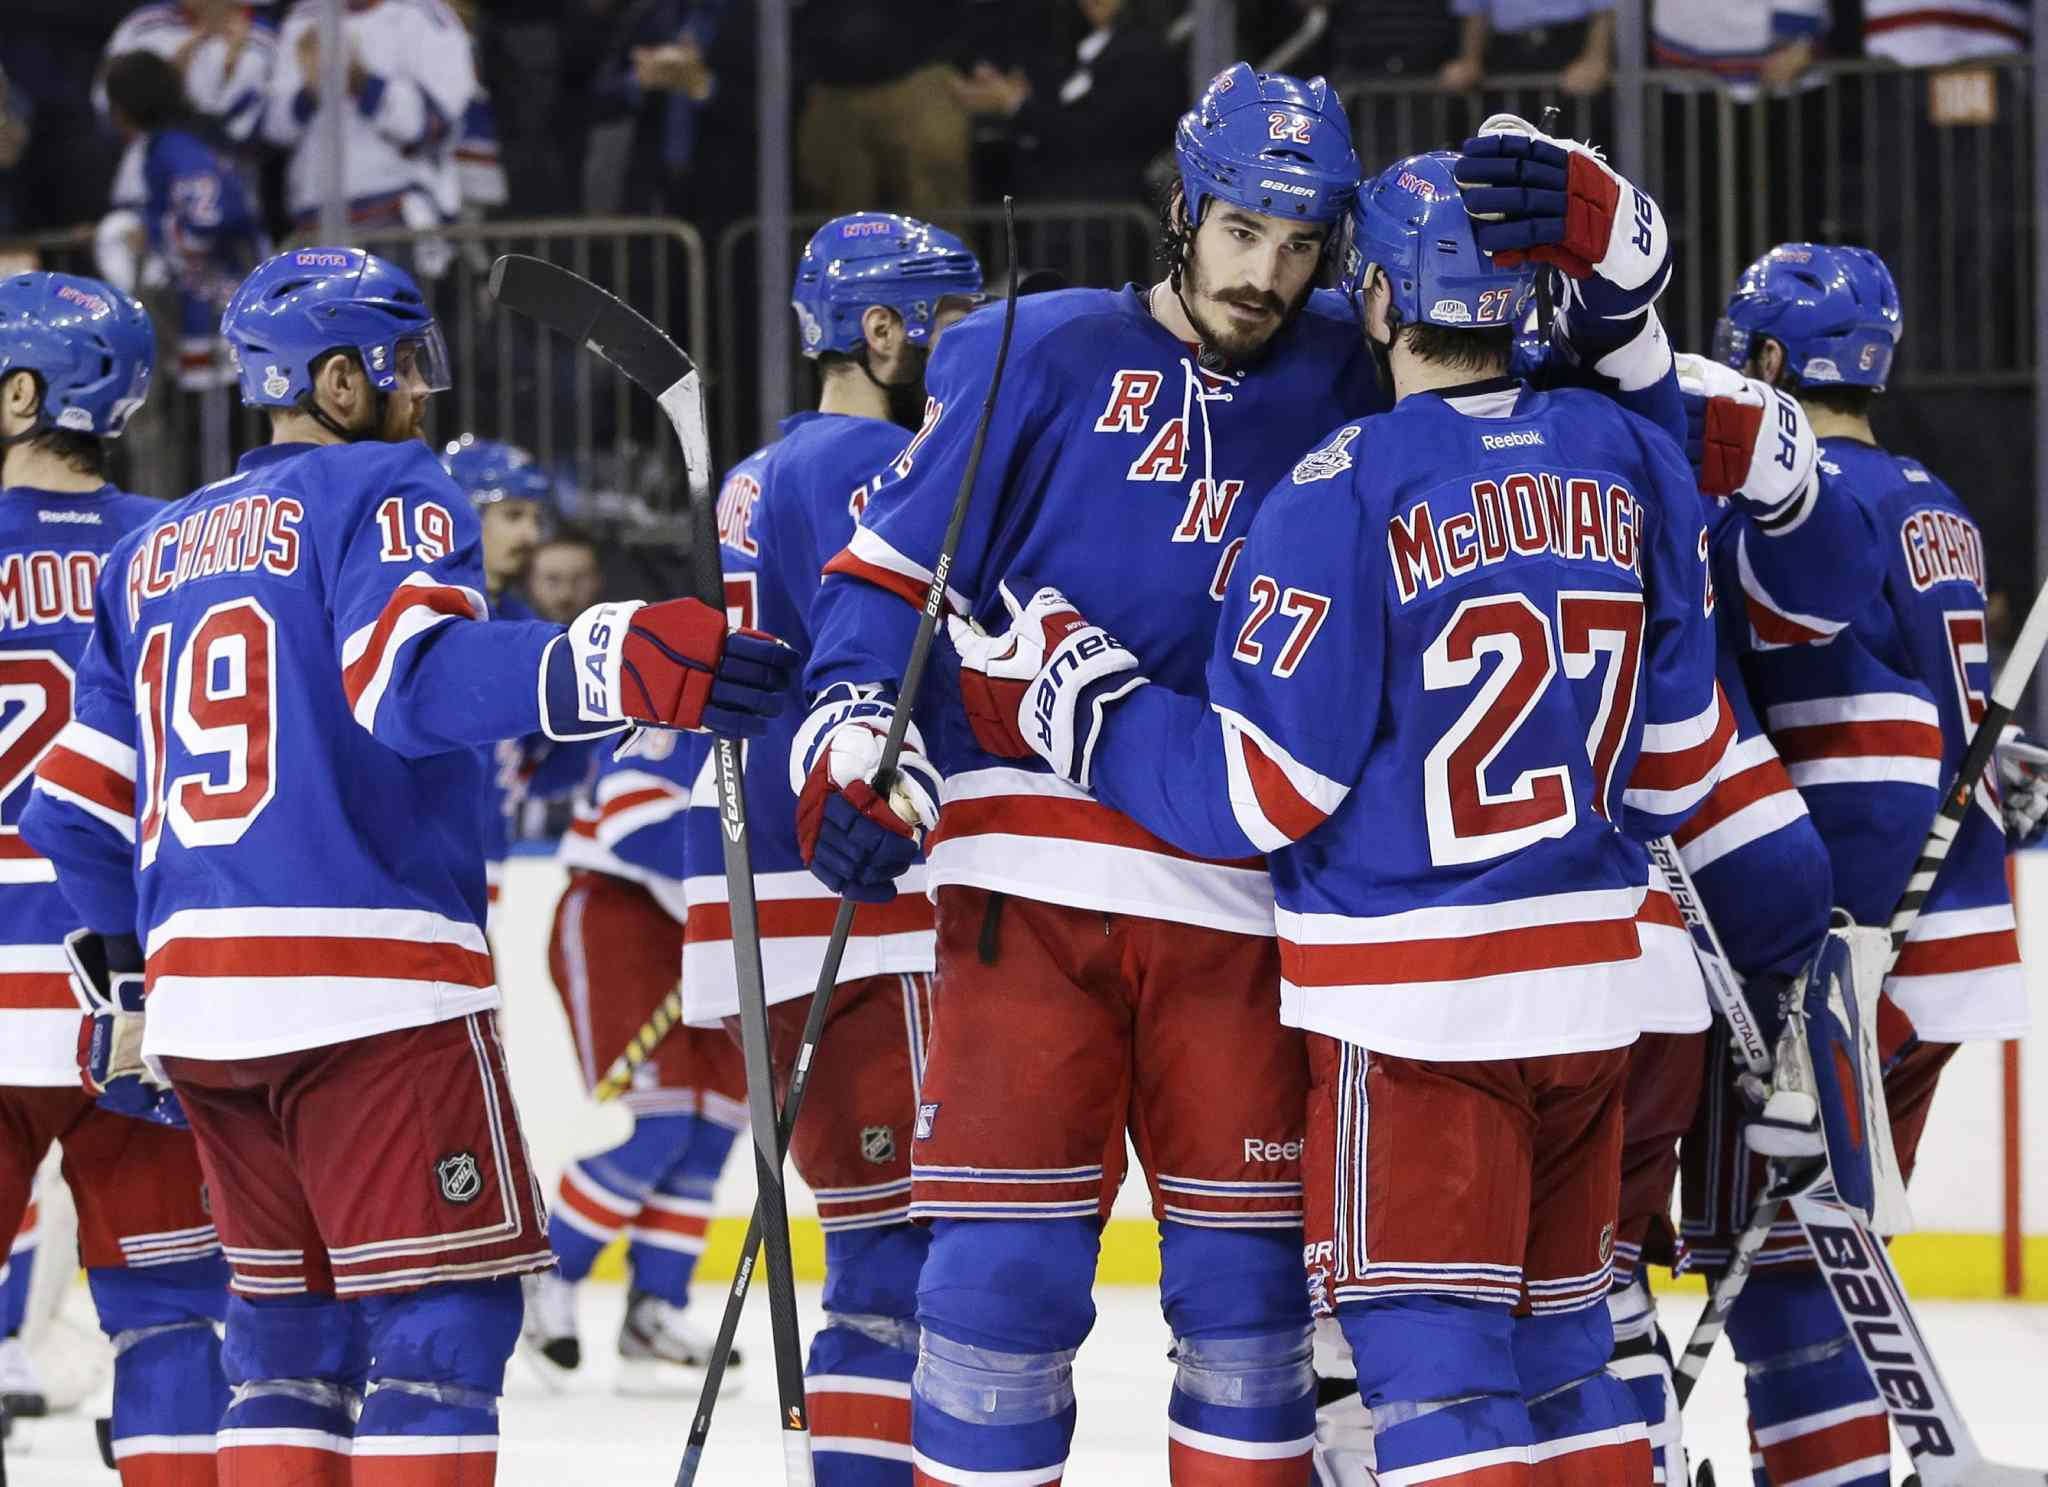 New York Rangers center Brian Boyle (22), center, greets defenseman Ryan McDonagh (27) after the Rangers beat the Los Angeles Kings Wednesday.